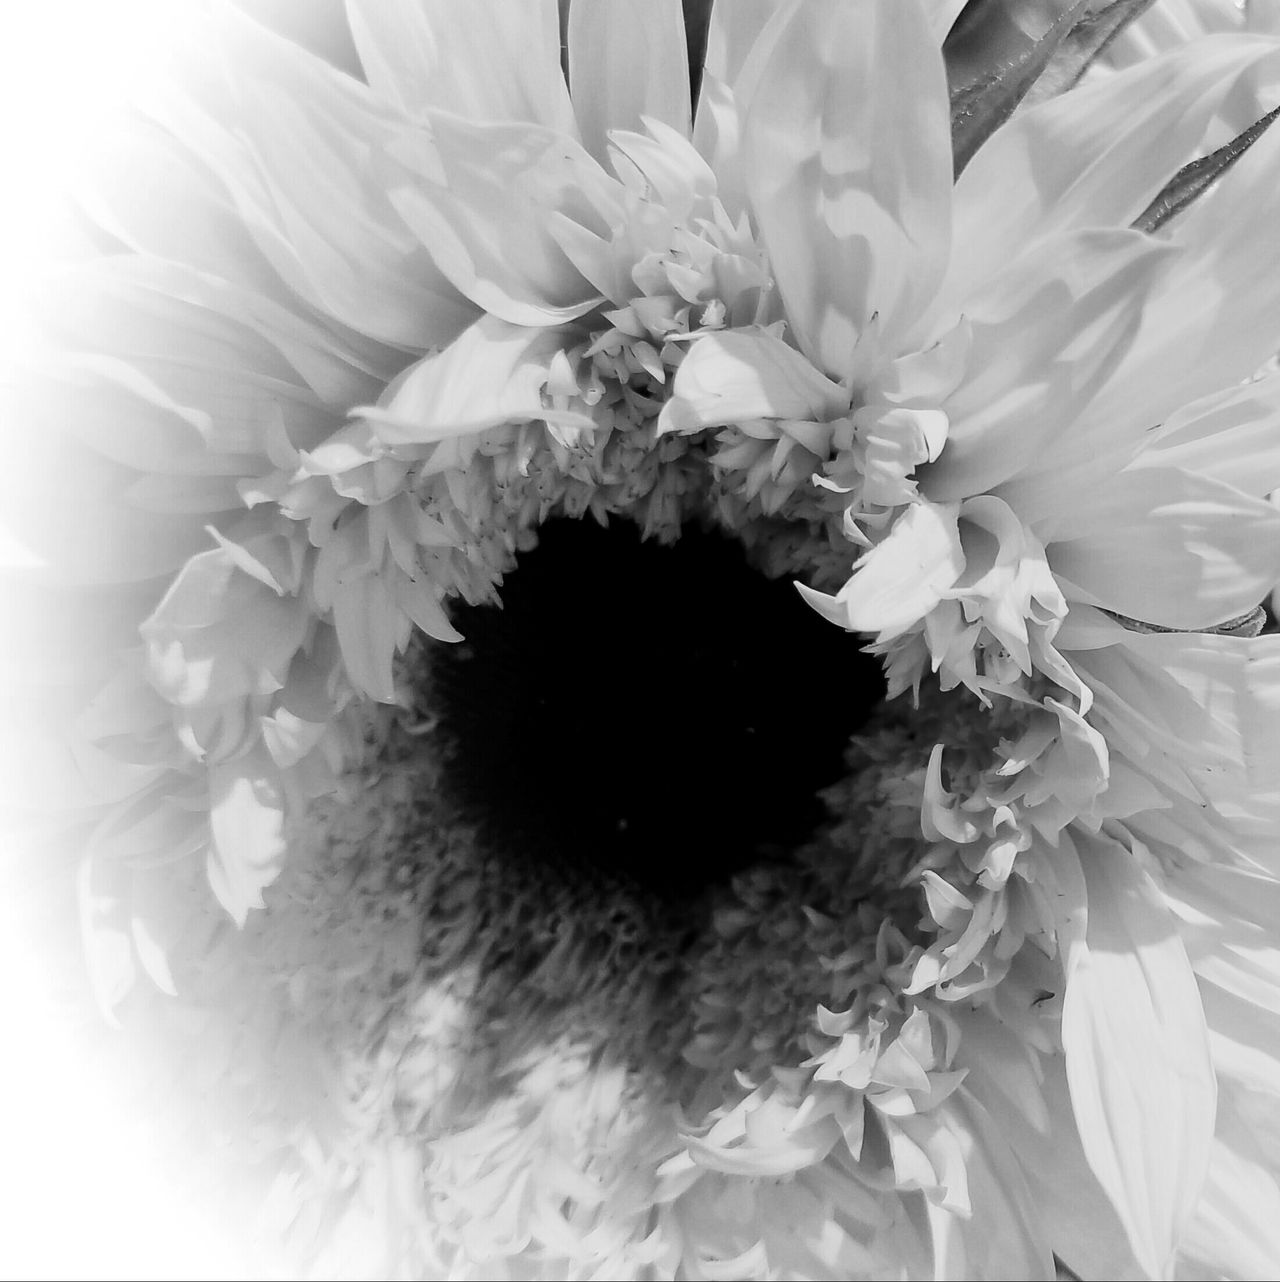 BLACK -N-WHITE HOLE Flower Fragility Freshness Flower Head Petal Close-up Beauty In Nature Nature Growth In Bloom Single Flower Botany Blossom Springtime Extreme Close-up Day Full Frame Pollen Blooming Monochrome Photography MUR B&W The Song Of Light Black And White Flowers MUR HARVEST Break The Mold Art Is Everywhere TCPM